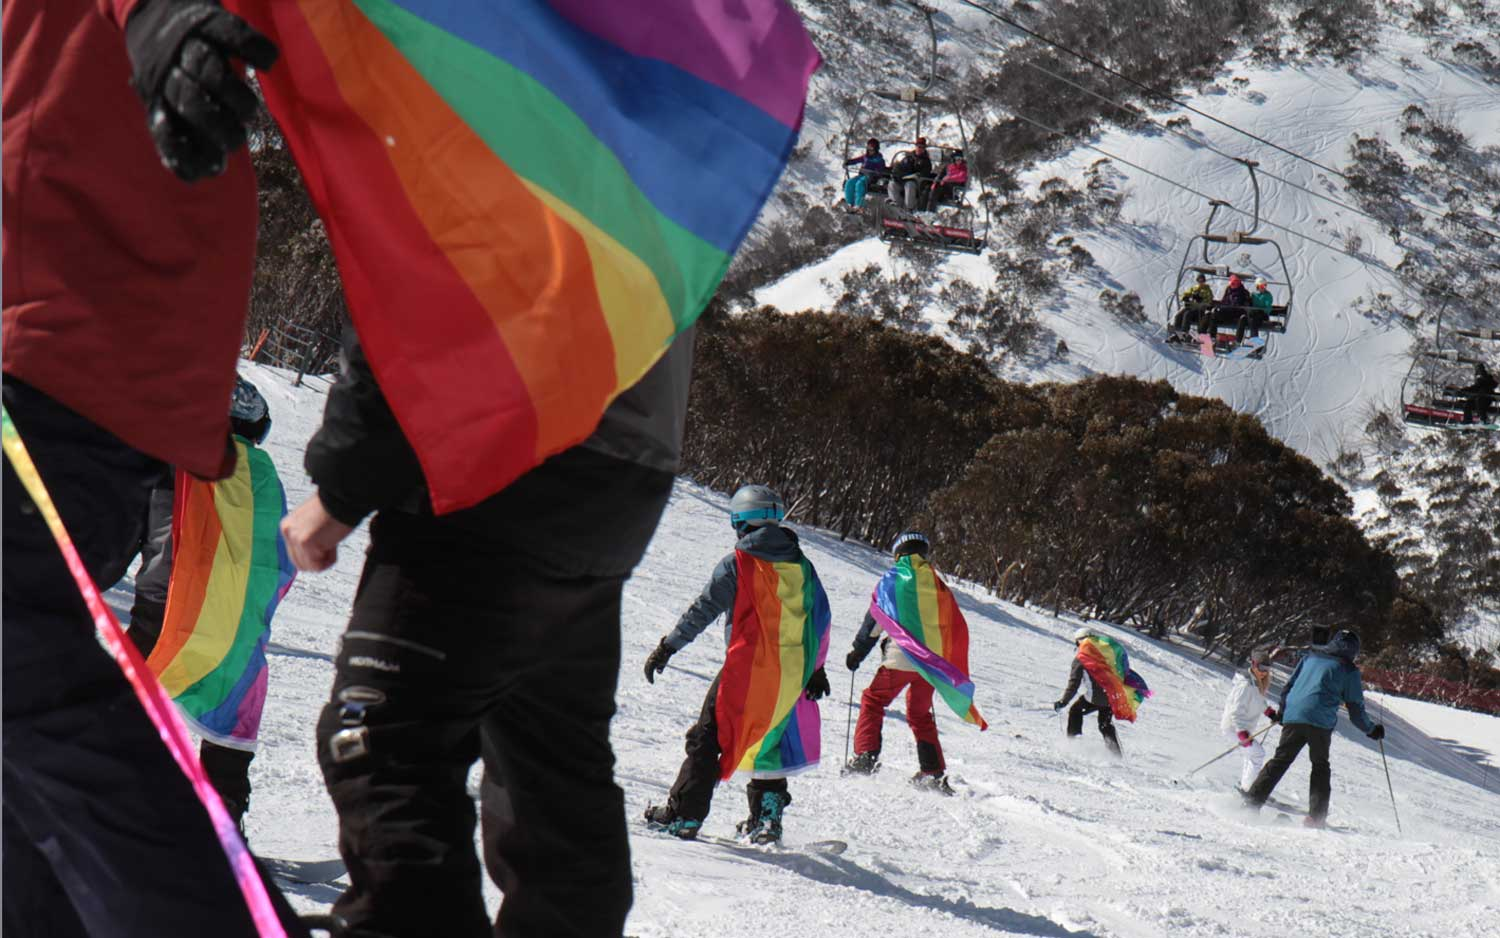 Gay Ski Week Australia Rainbow Run